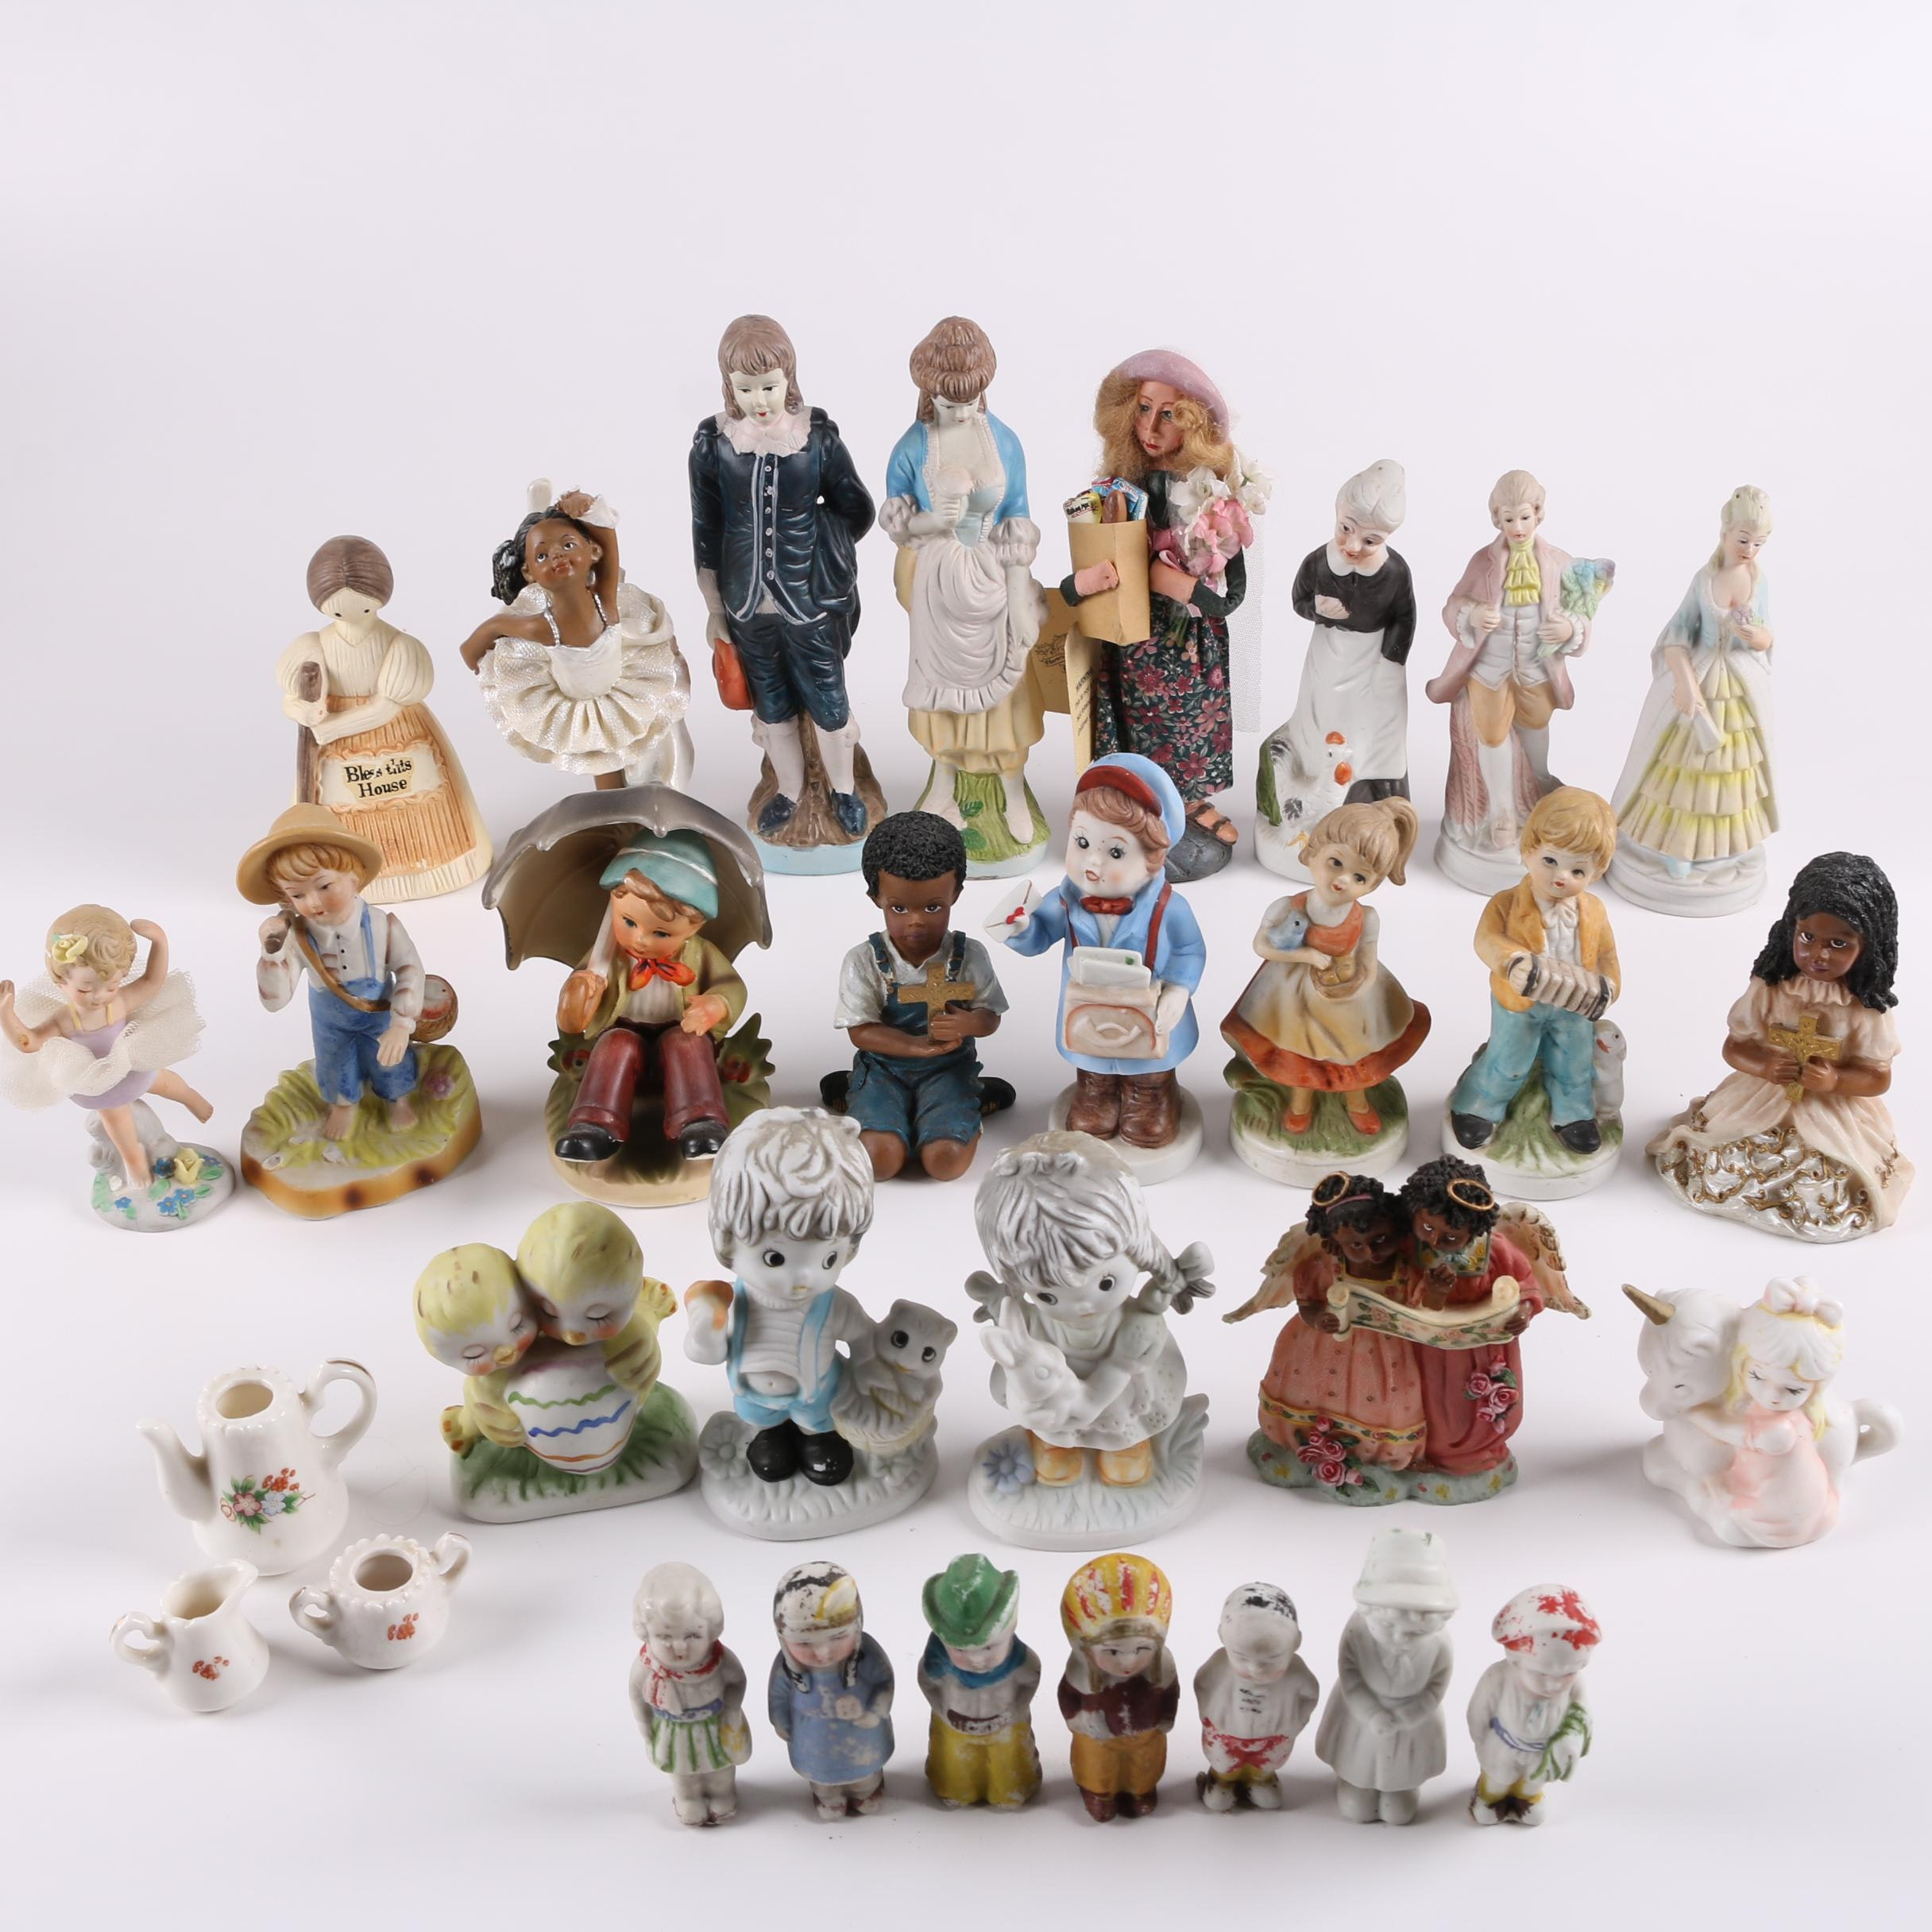 Vintage Japanese Bisque Figurines and Other Ceramic and Resin Figures